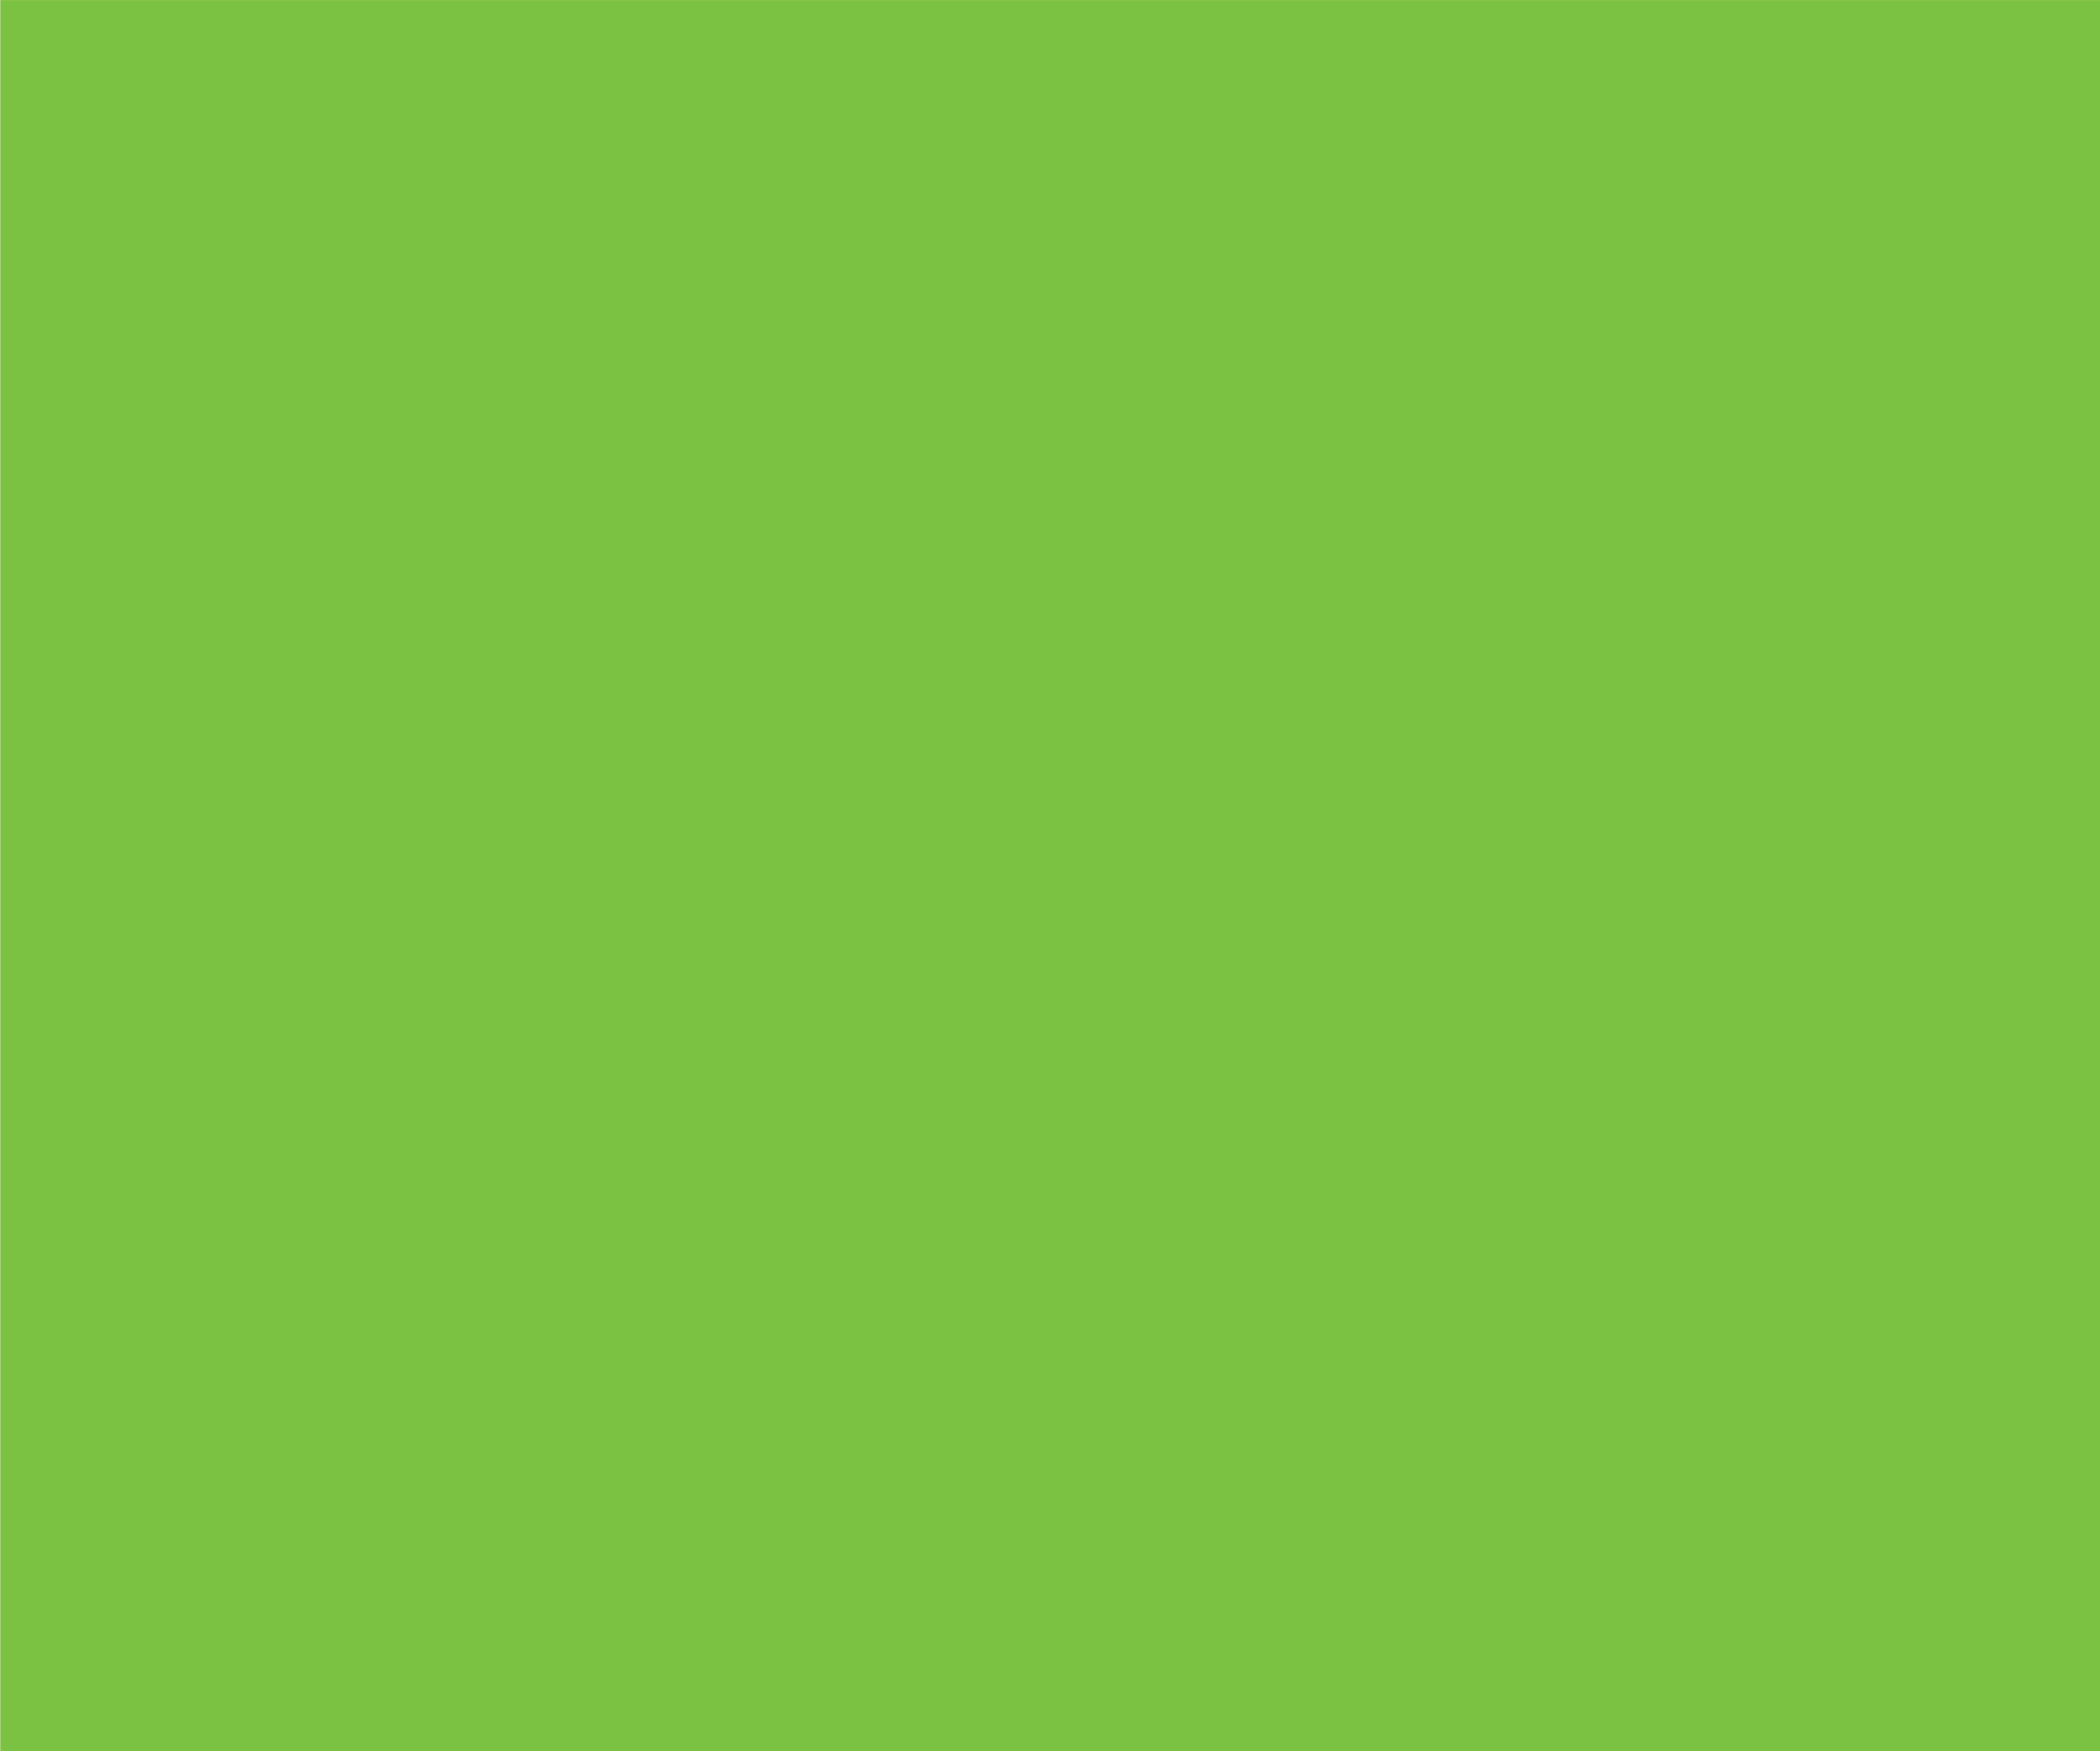 Green Background-02.png